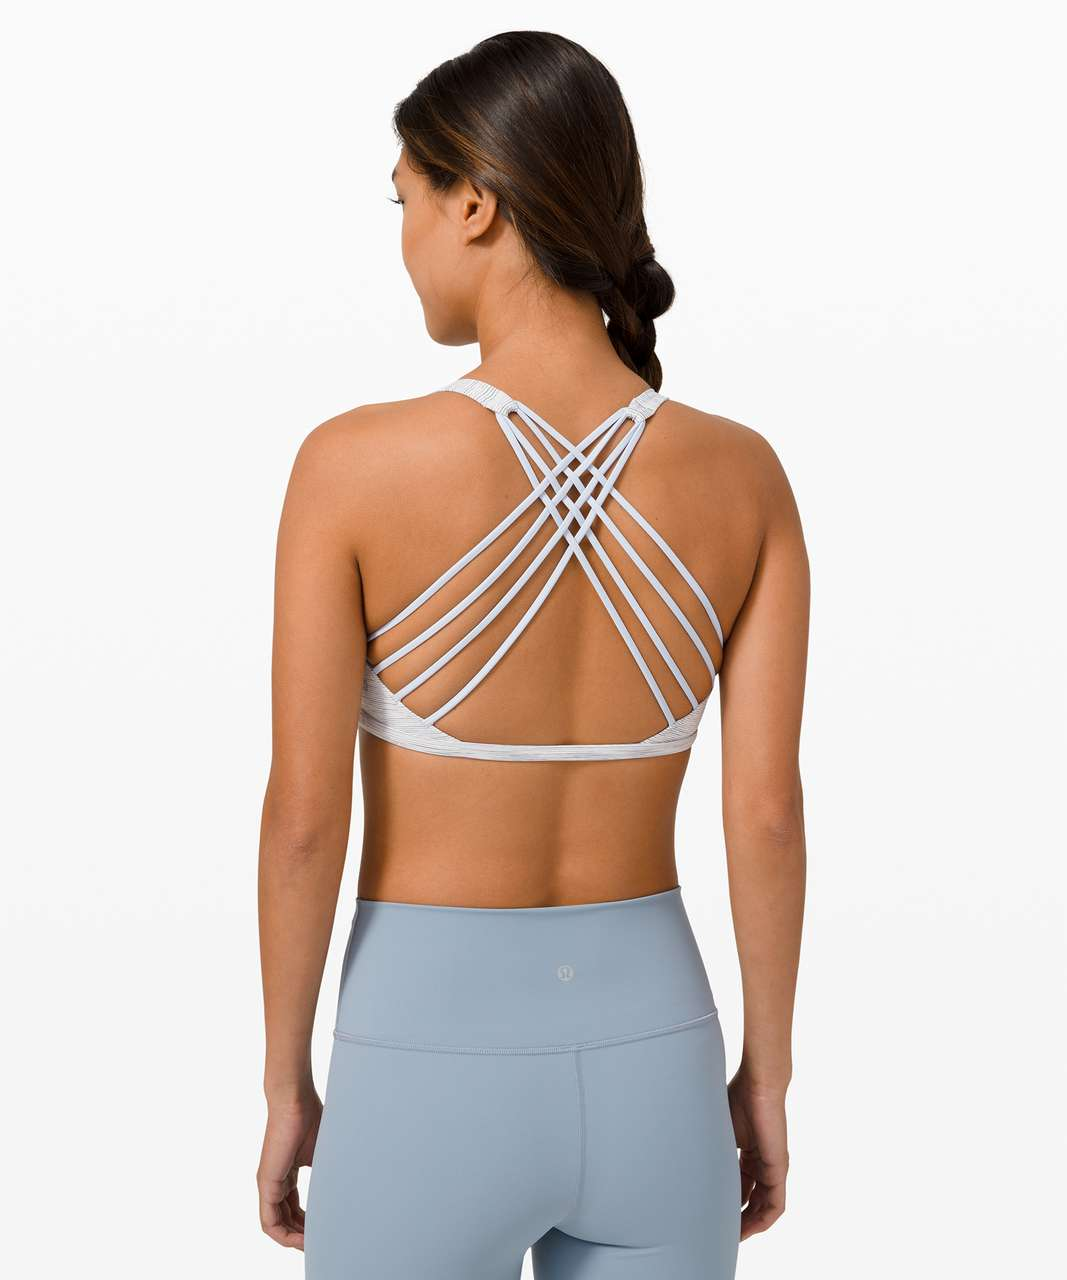 Lululemon Free To Be Bra Wild *Light Support, A/B Cup - Wee Are From Space Nimbus Battleship / Daydream